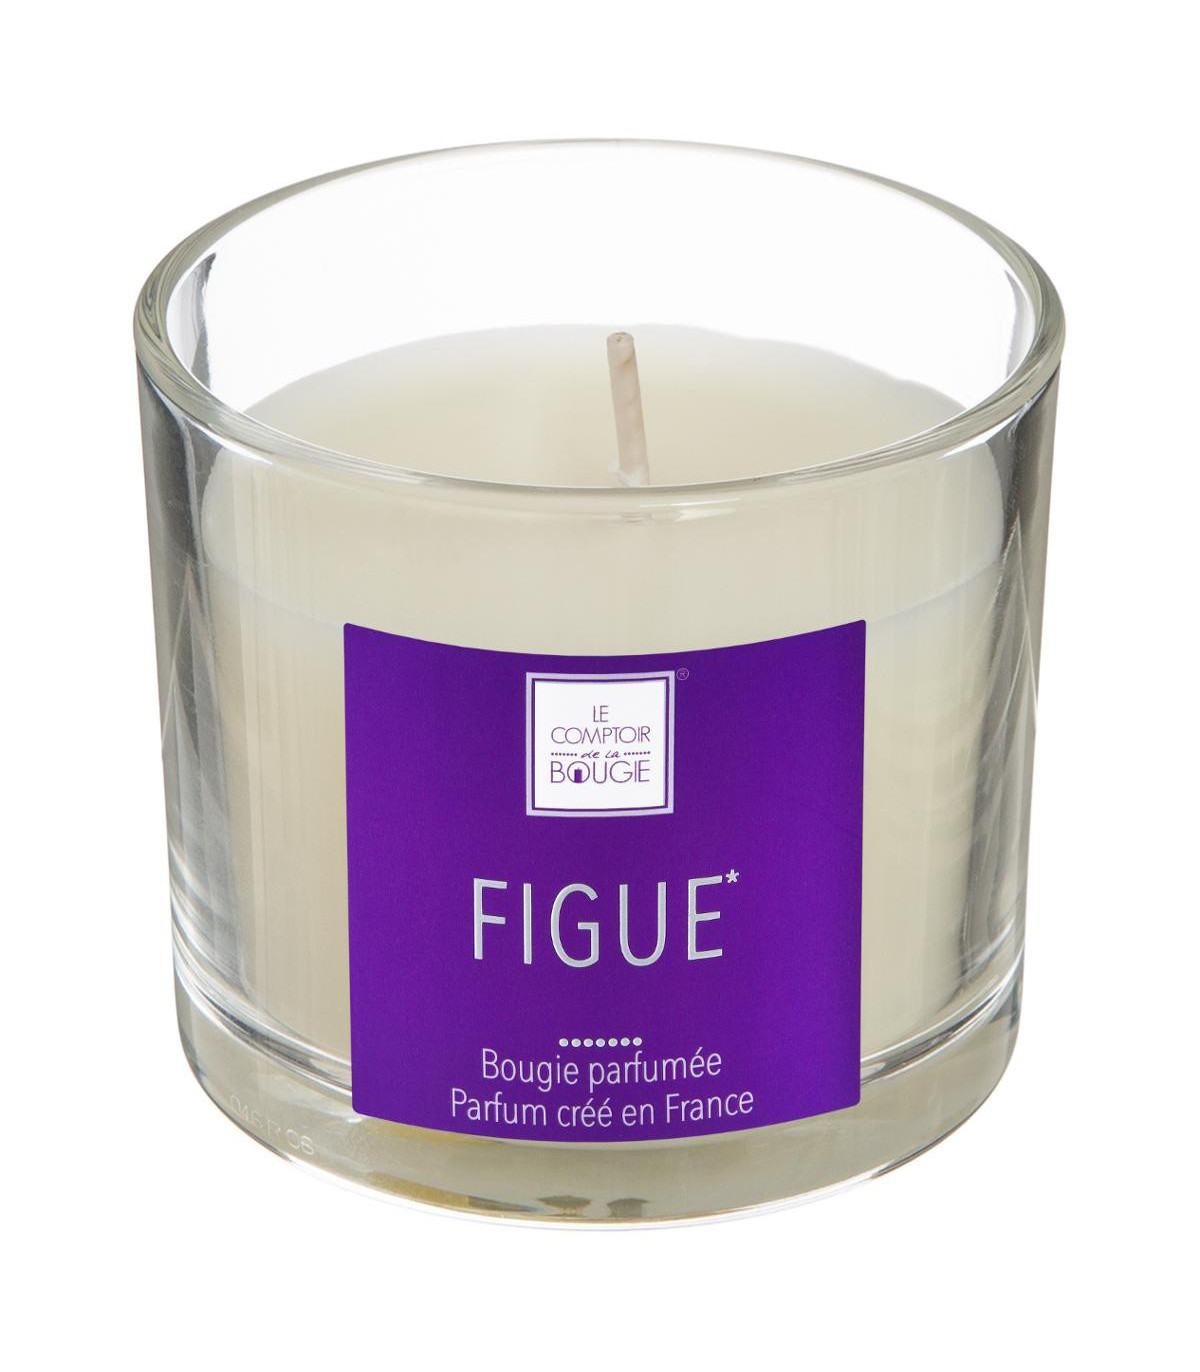 Bougie parfumée figue elea 100g - DECOMANIA